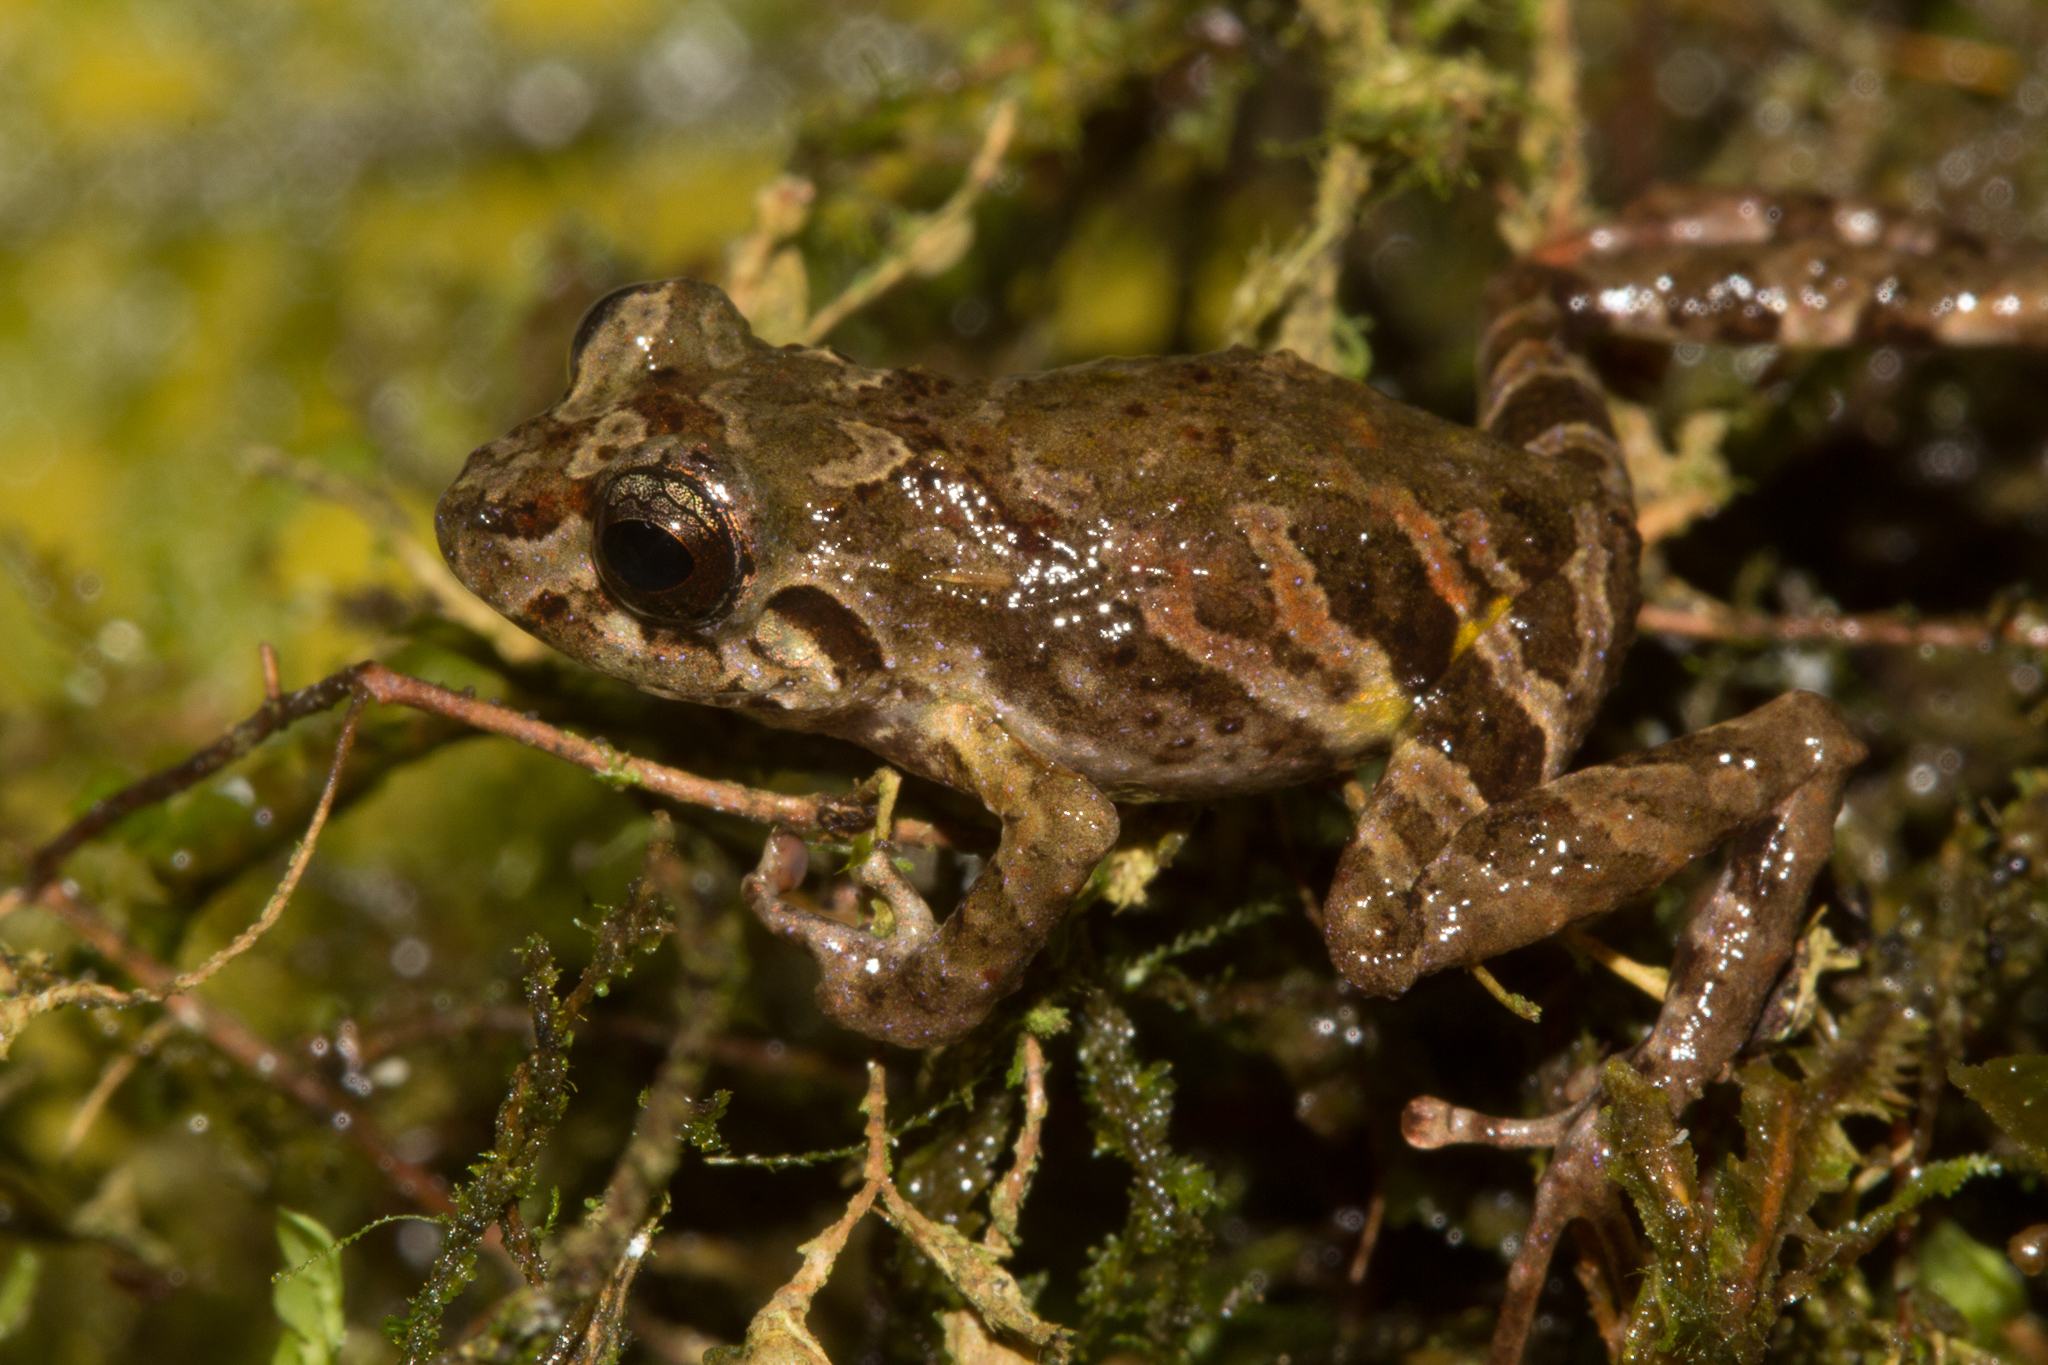 A new species of terrestrial terrarana frog in the genus Pristimantis, discovered between Camps 3 and 4. Photo by Santiago Castroviejo